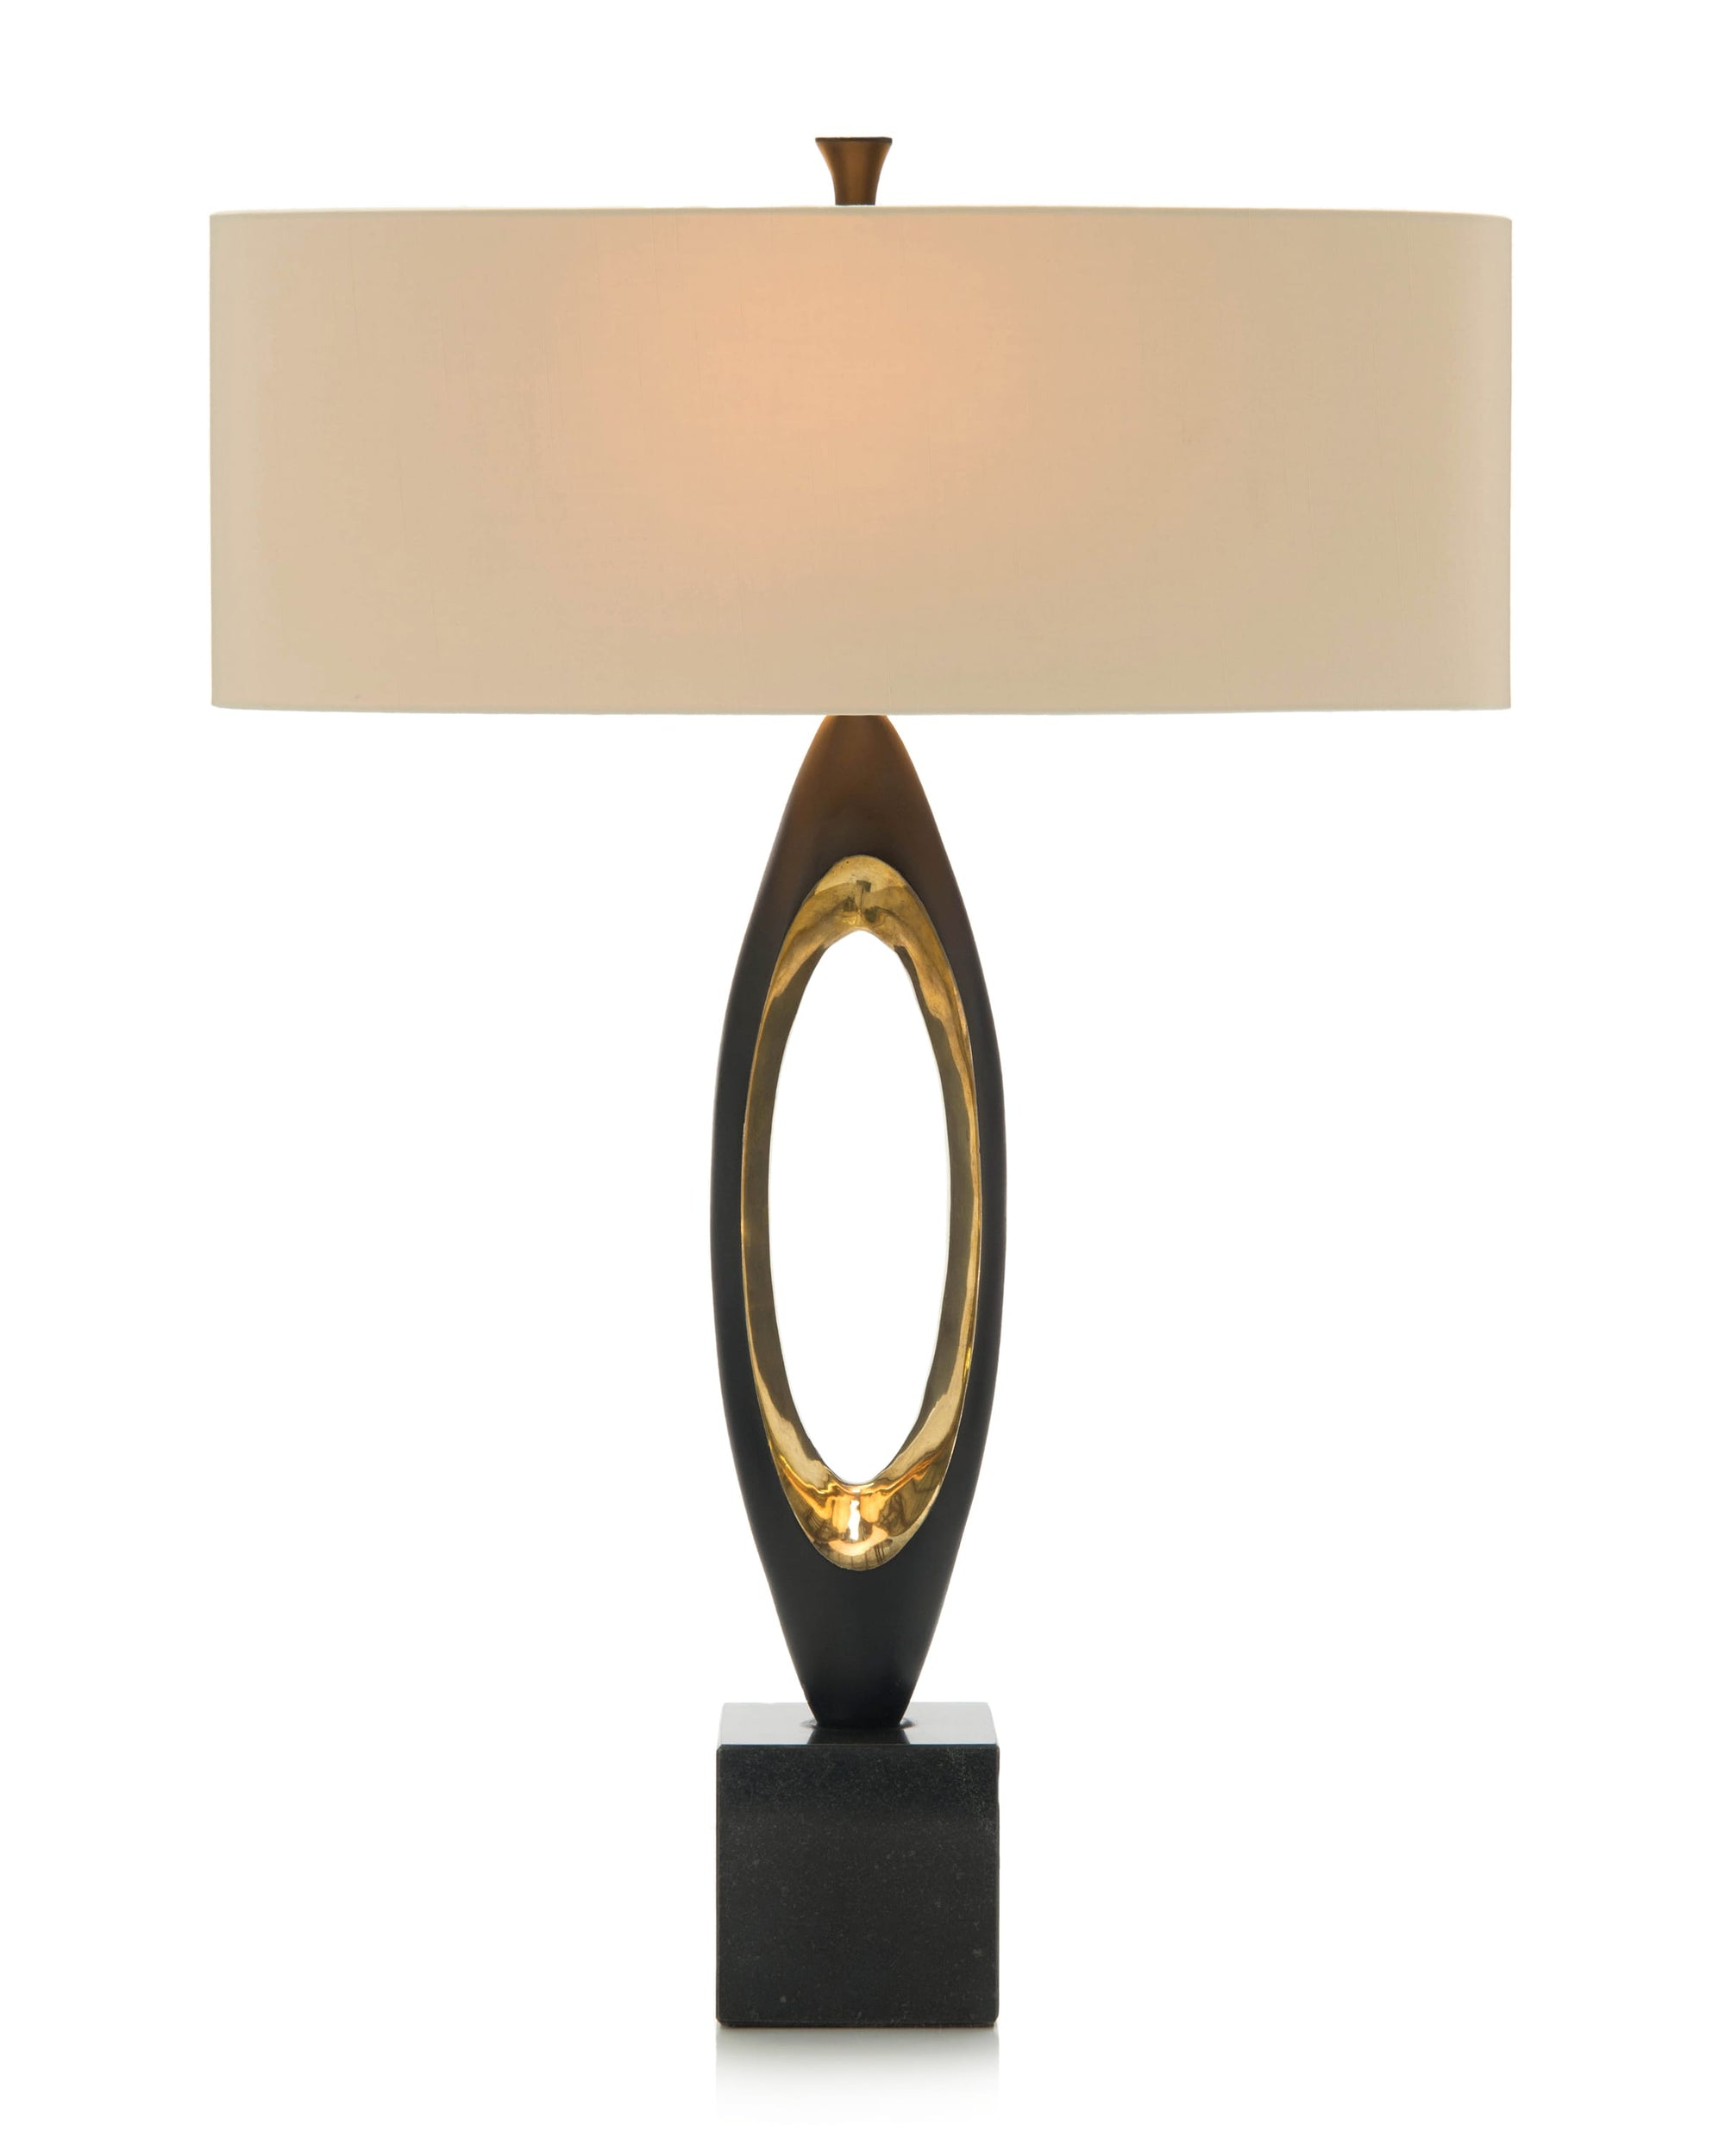 Matte black and brass plated table lamp from John-Richard Collection